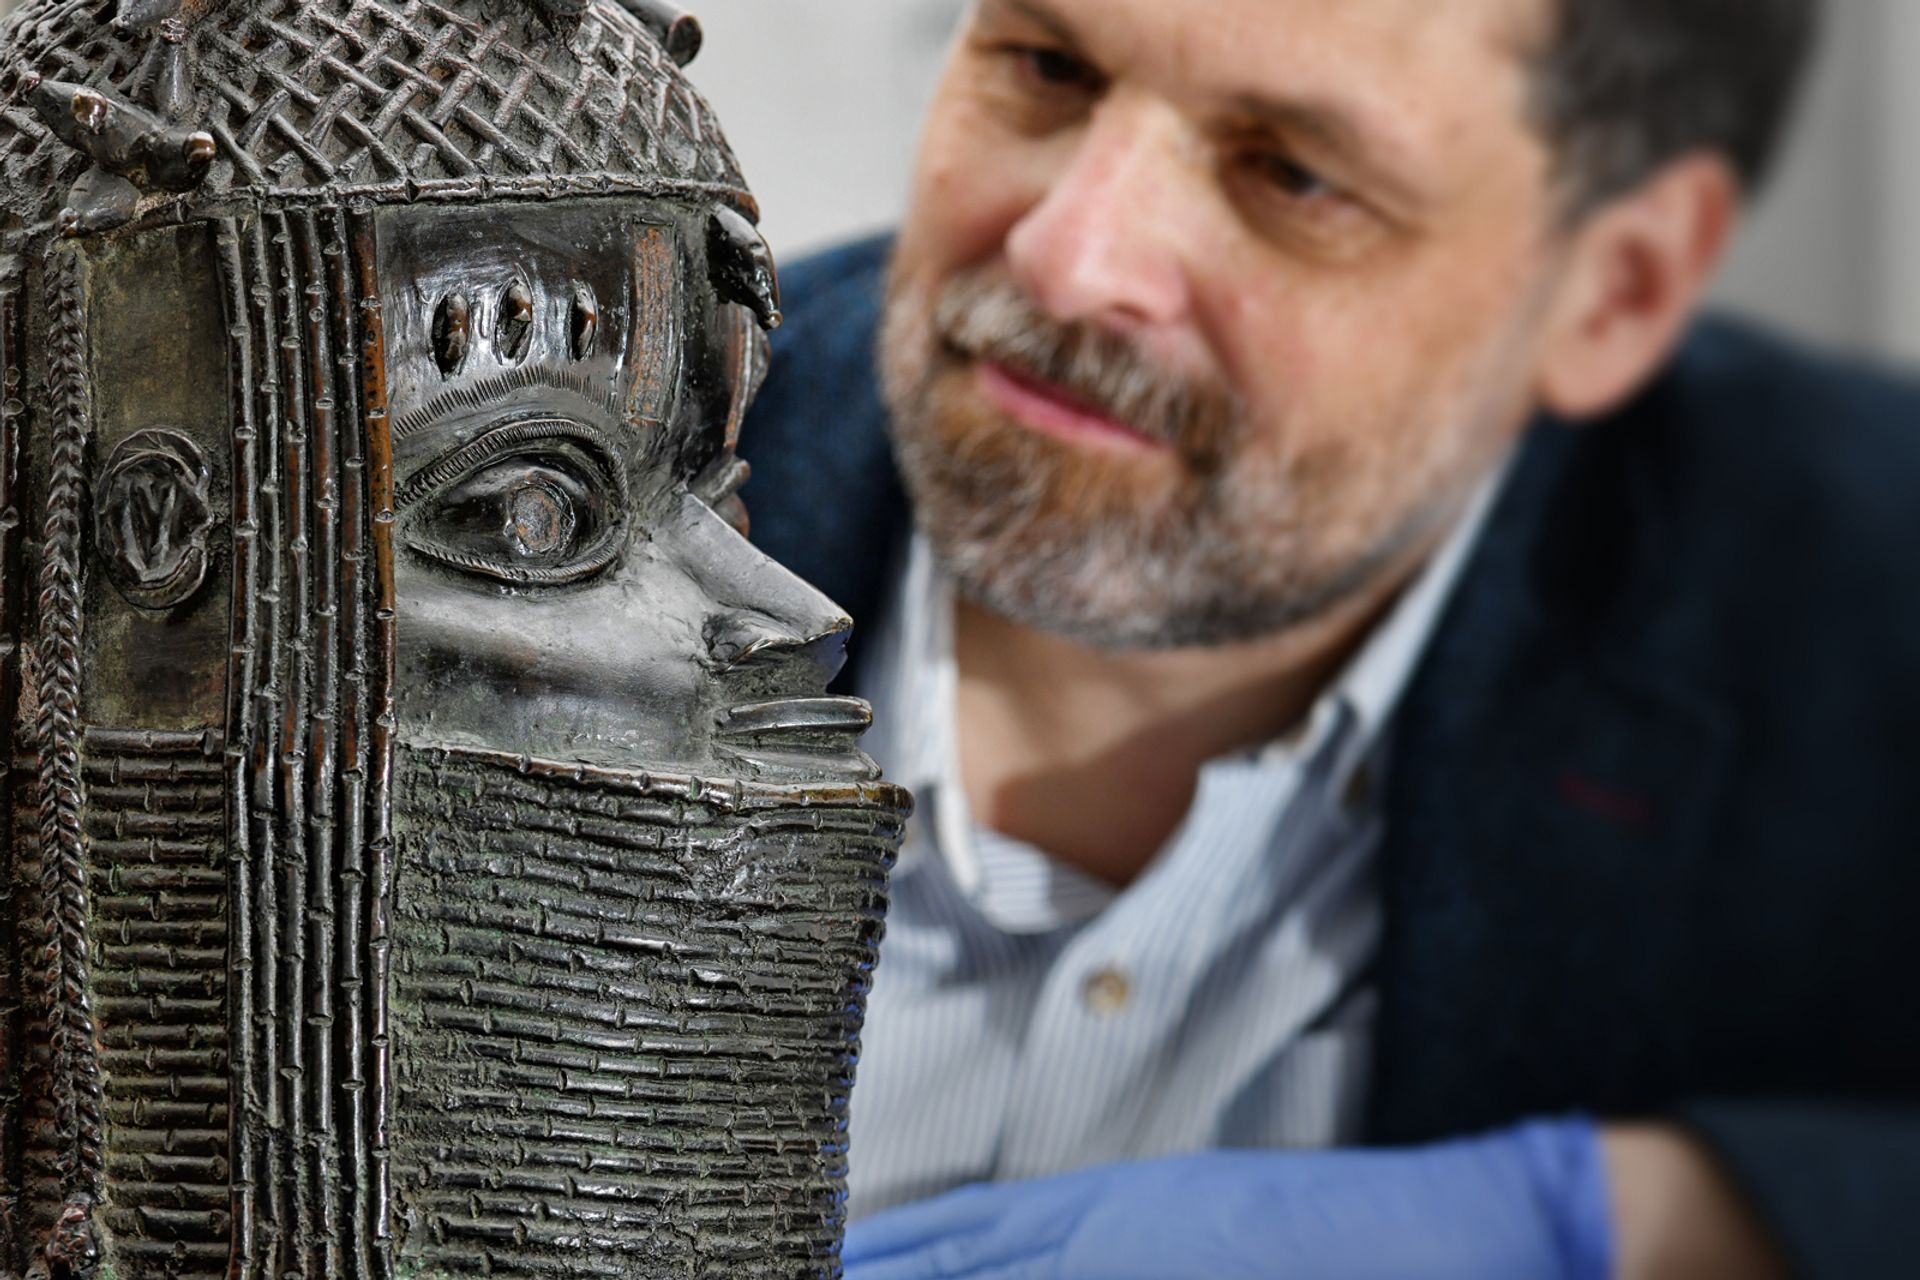 Neil Curtis, the head of museums and special collections at the University of Aberdeen, with the Benin sculpture Image: courtesy of University of Aberdeen